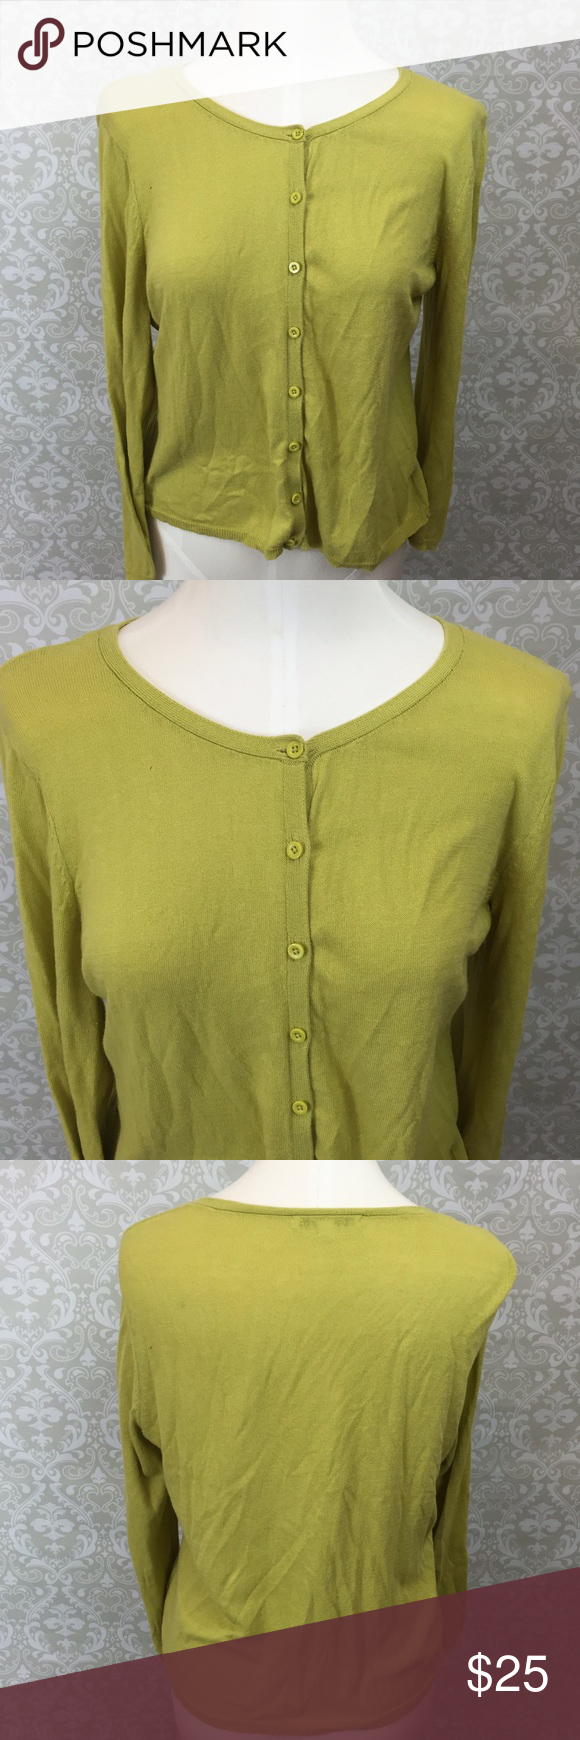 ⛱Cabi Women's Pea Green Classic Cardigan Cabi Women's Pea Green Classic Cardigan Size Large  This has been gently worn with no major flaws.  There may be signs of wash wear. Please refer to photos for more details. CAbi Tops